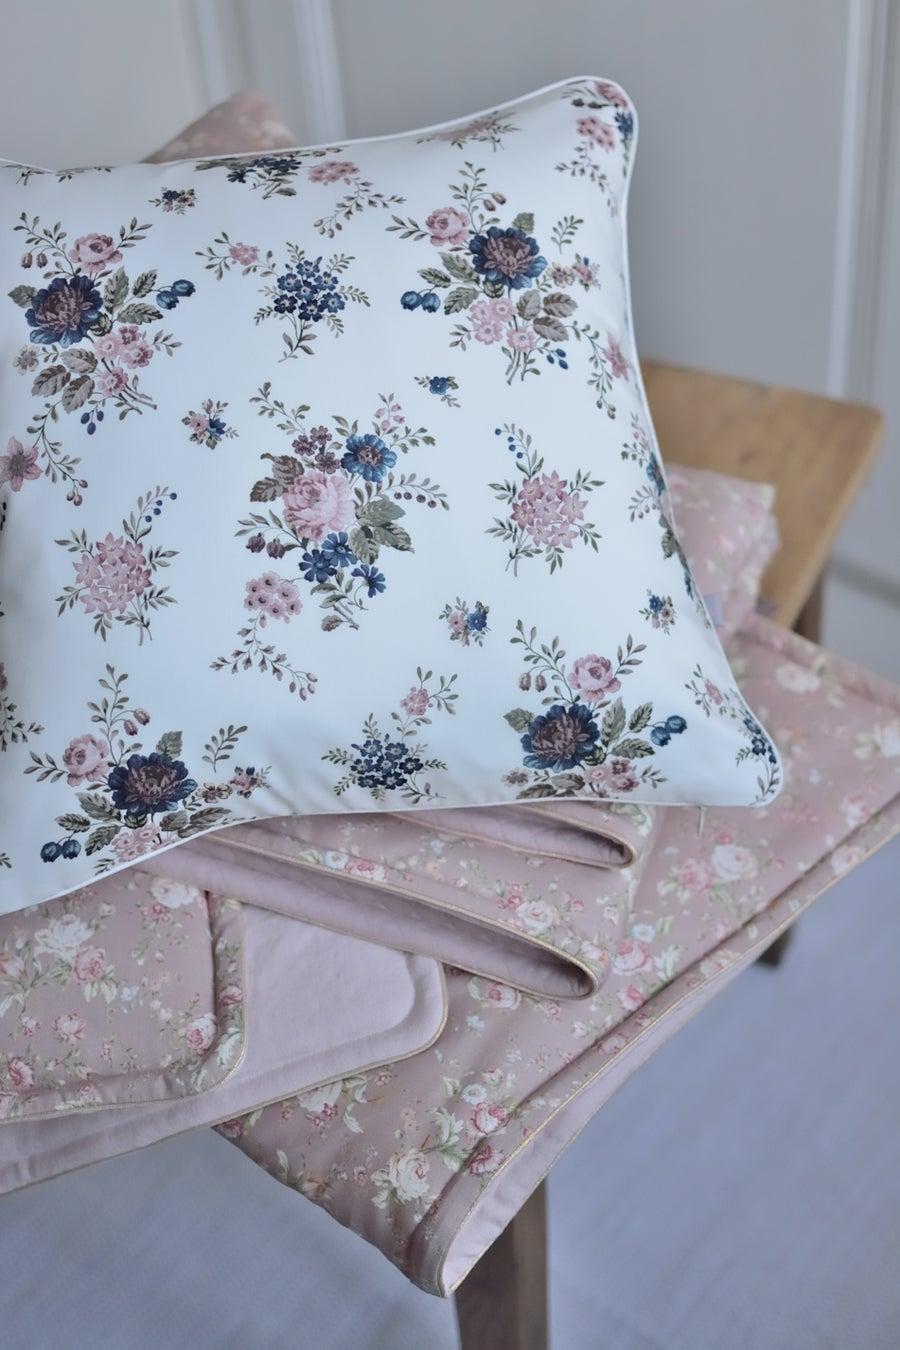 Image of Coussin en liberty sussex et lin lavé